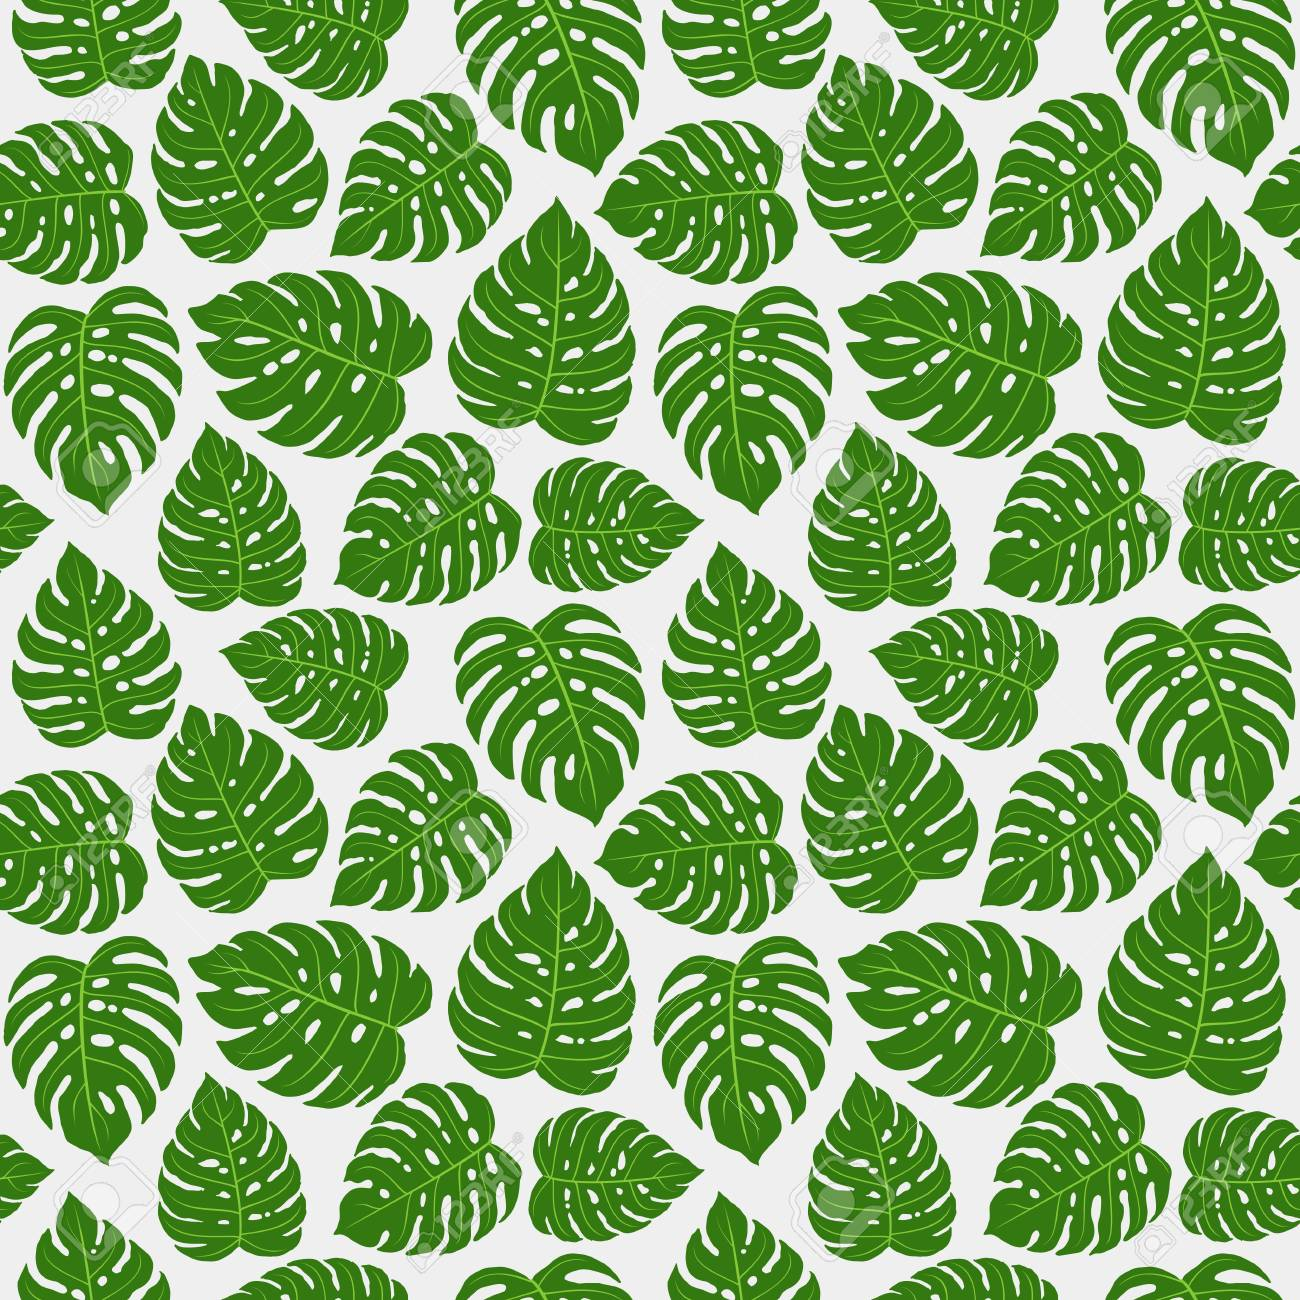 Monstera Leaves Repetitive Pattern Design For Fabric Print